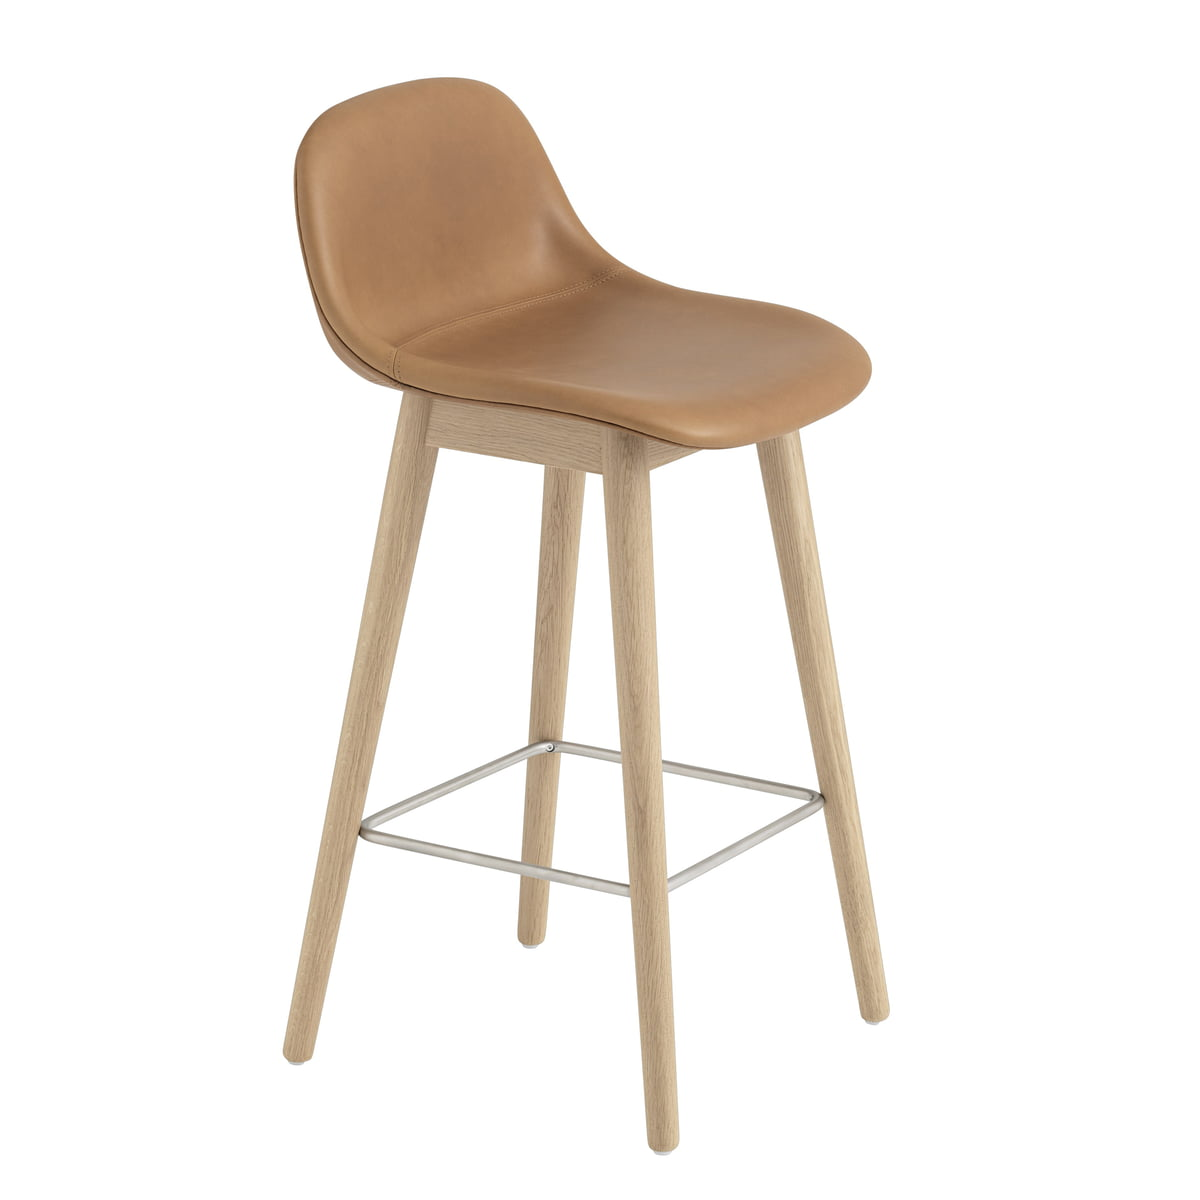 Fiber Bar Stool With Backrest Wood Base H65 By Muuto In Natural Oak Cognac